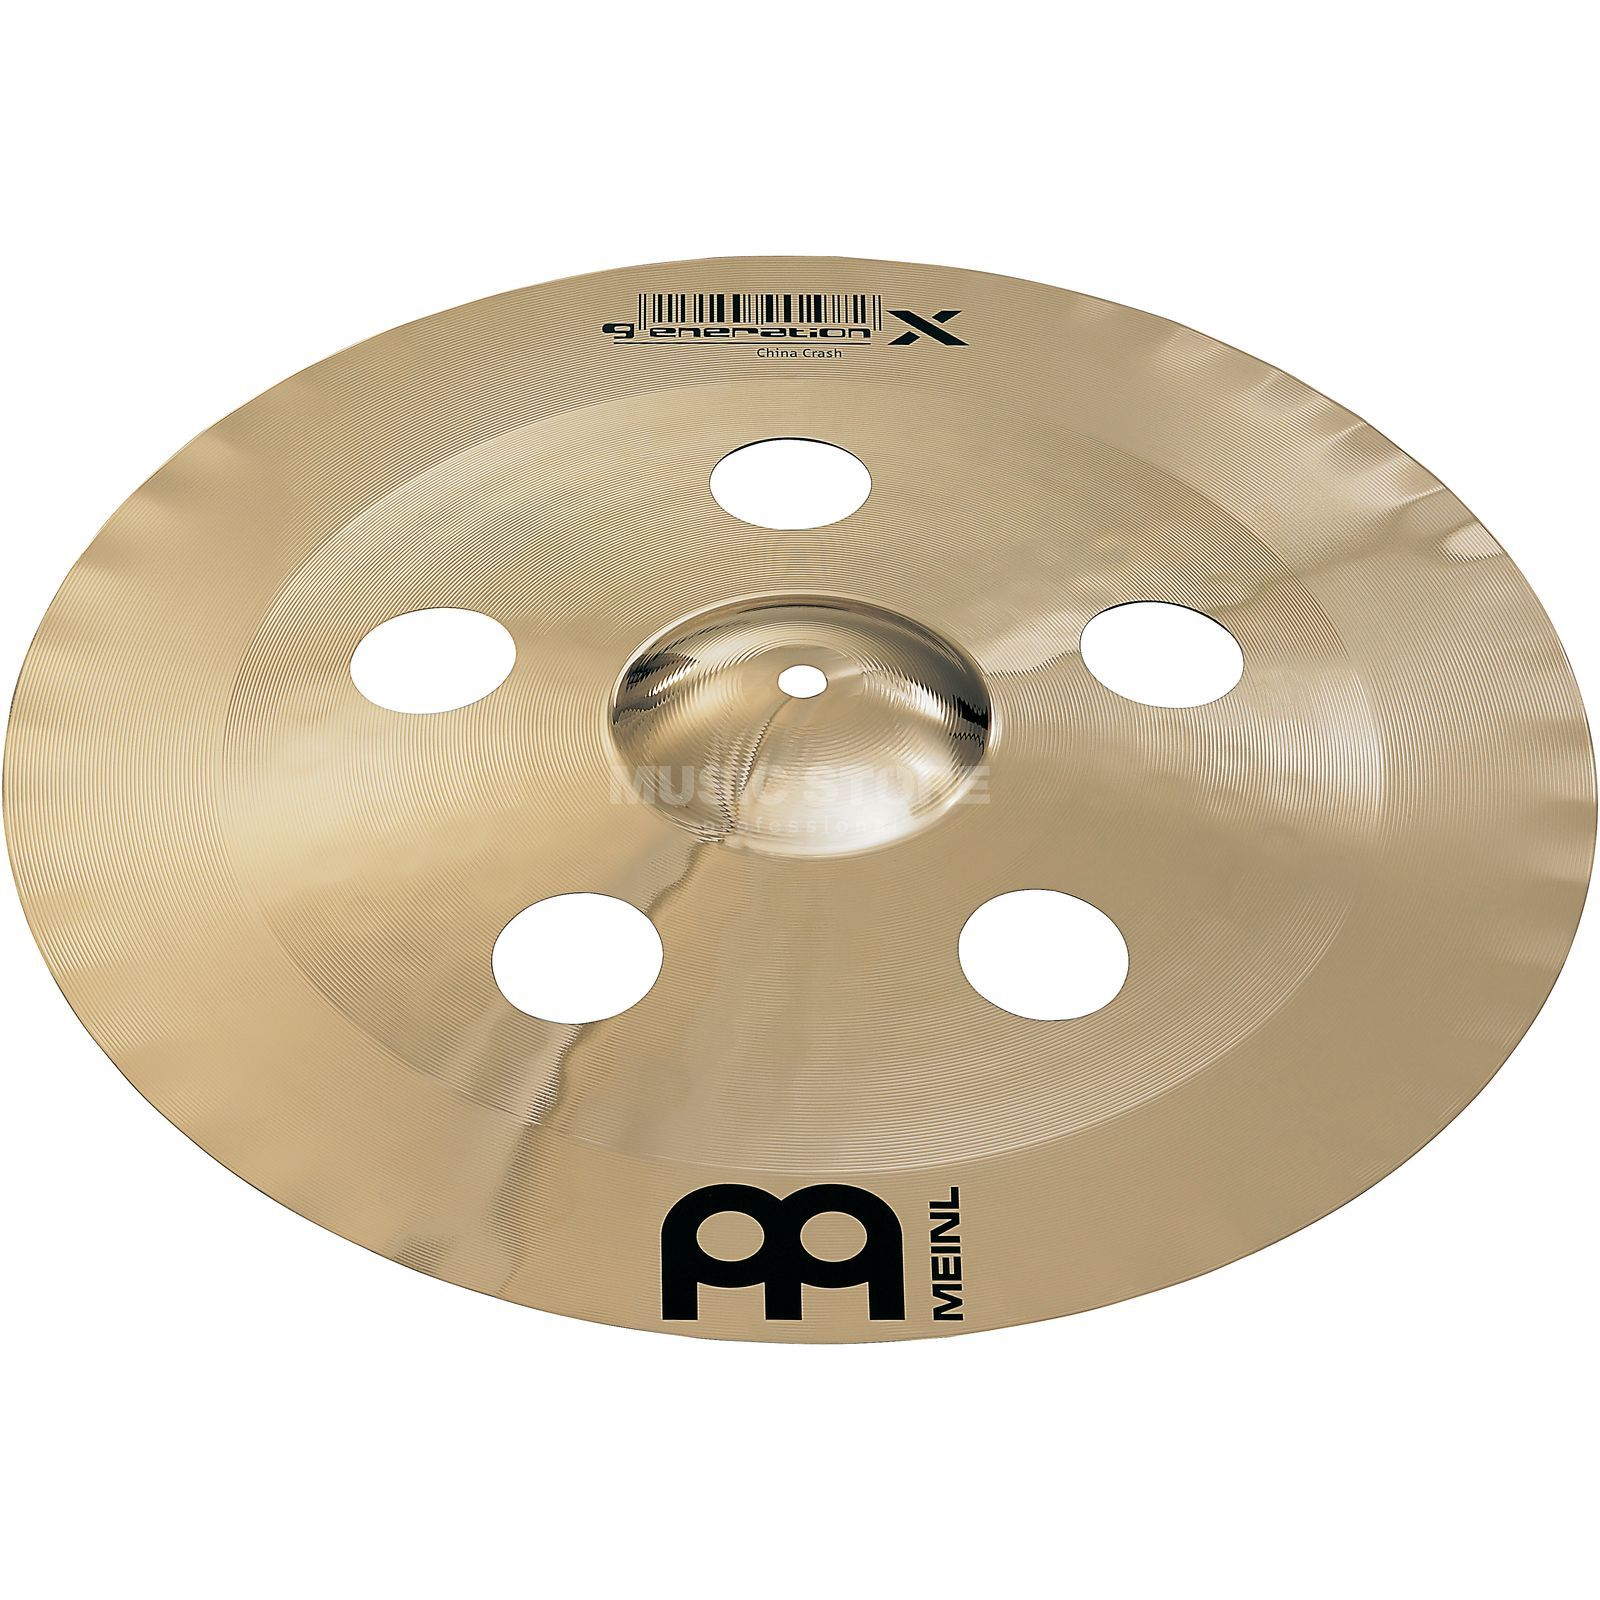 "Meinl Generation X China Crash 19"", GX-19CHC-B Produktbillede"